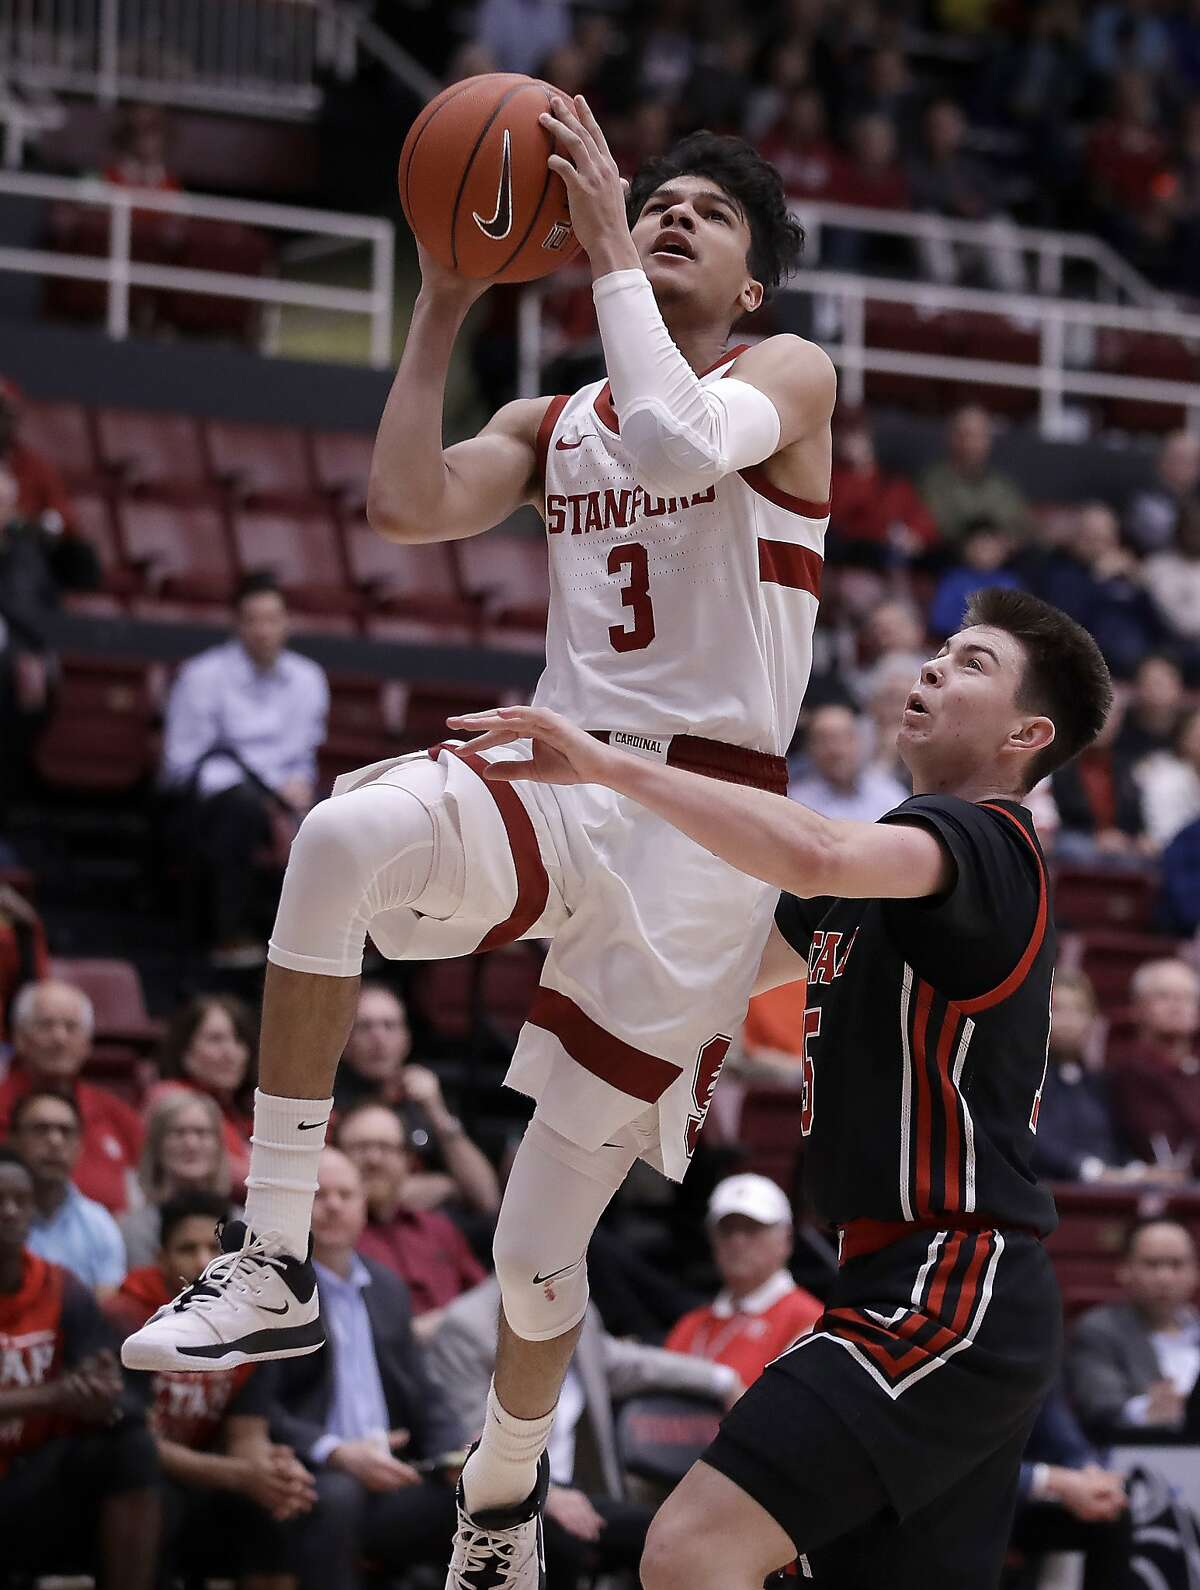 Stanford's Tyrell Terry (3) shoots against Utah's Rylan Jones, right, in the first half of an NCAA college basketball game Wednesday, Feb. 26, 2020, in Stanford, Calif. (AP Photo/Ben Margot)